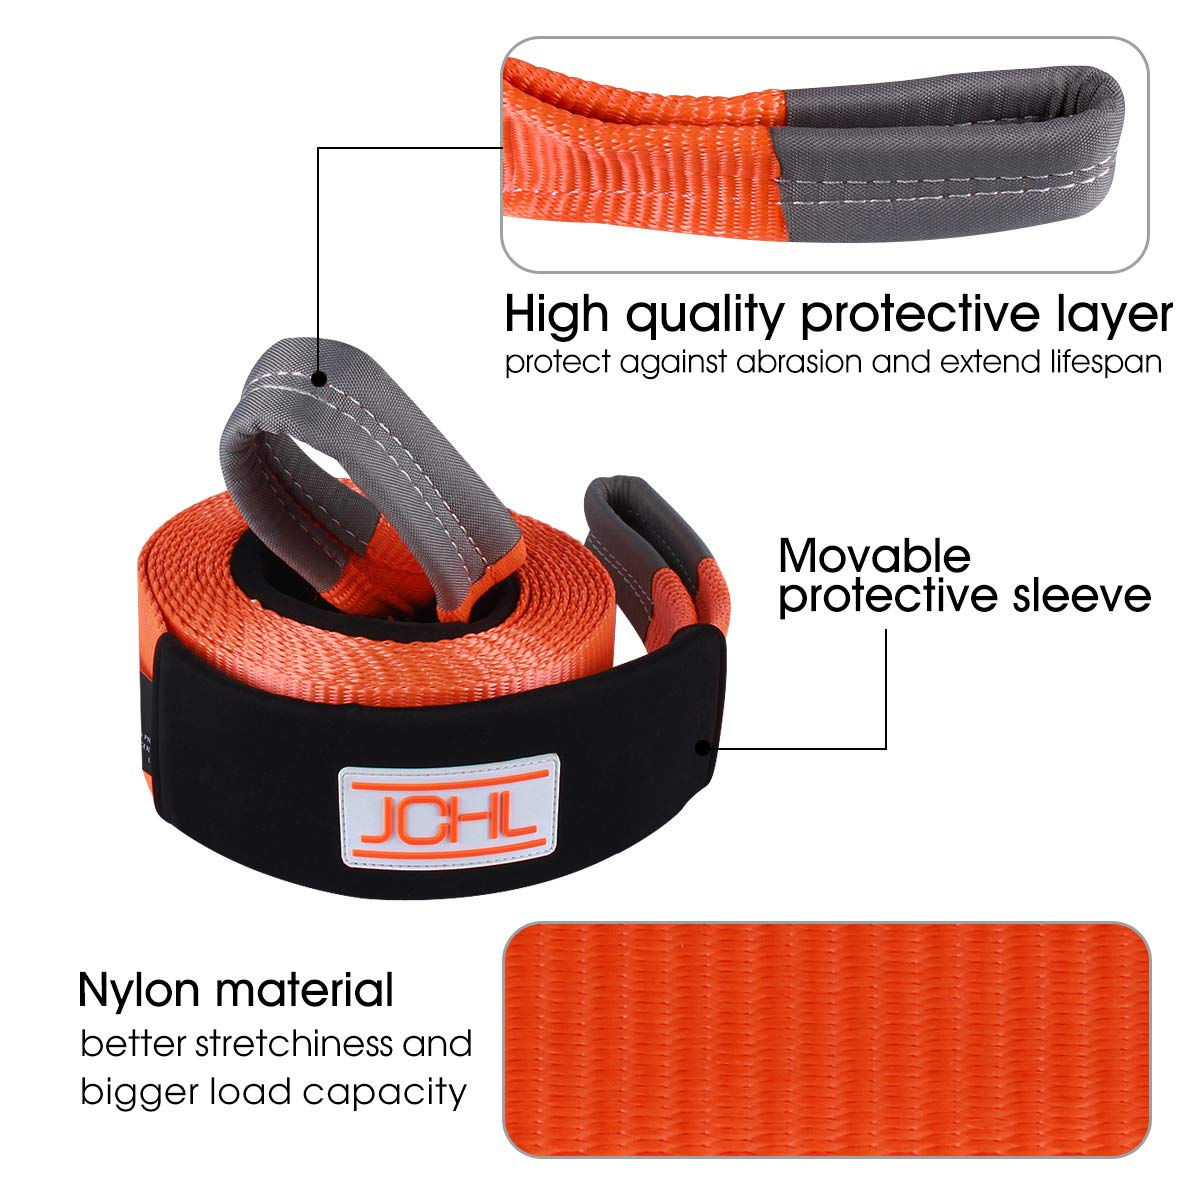 Storage Bag Emergency Towing Rope for Recovery JCHL Recovery Tow Strap Heavy Duty Draw String 3x20ft 35000LBS 18TON Reinforced Loops Rated Capacity Off Road Towing Rope Protective Sleeves